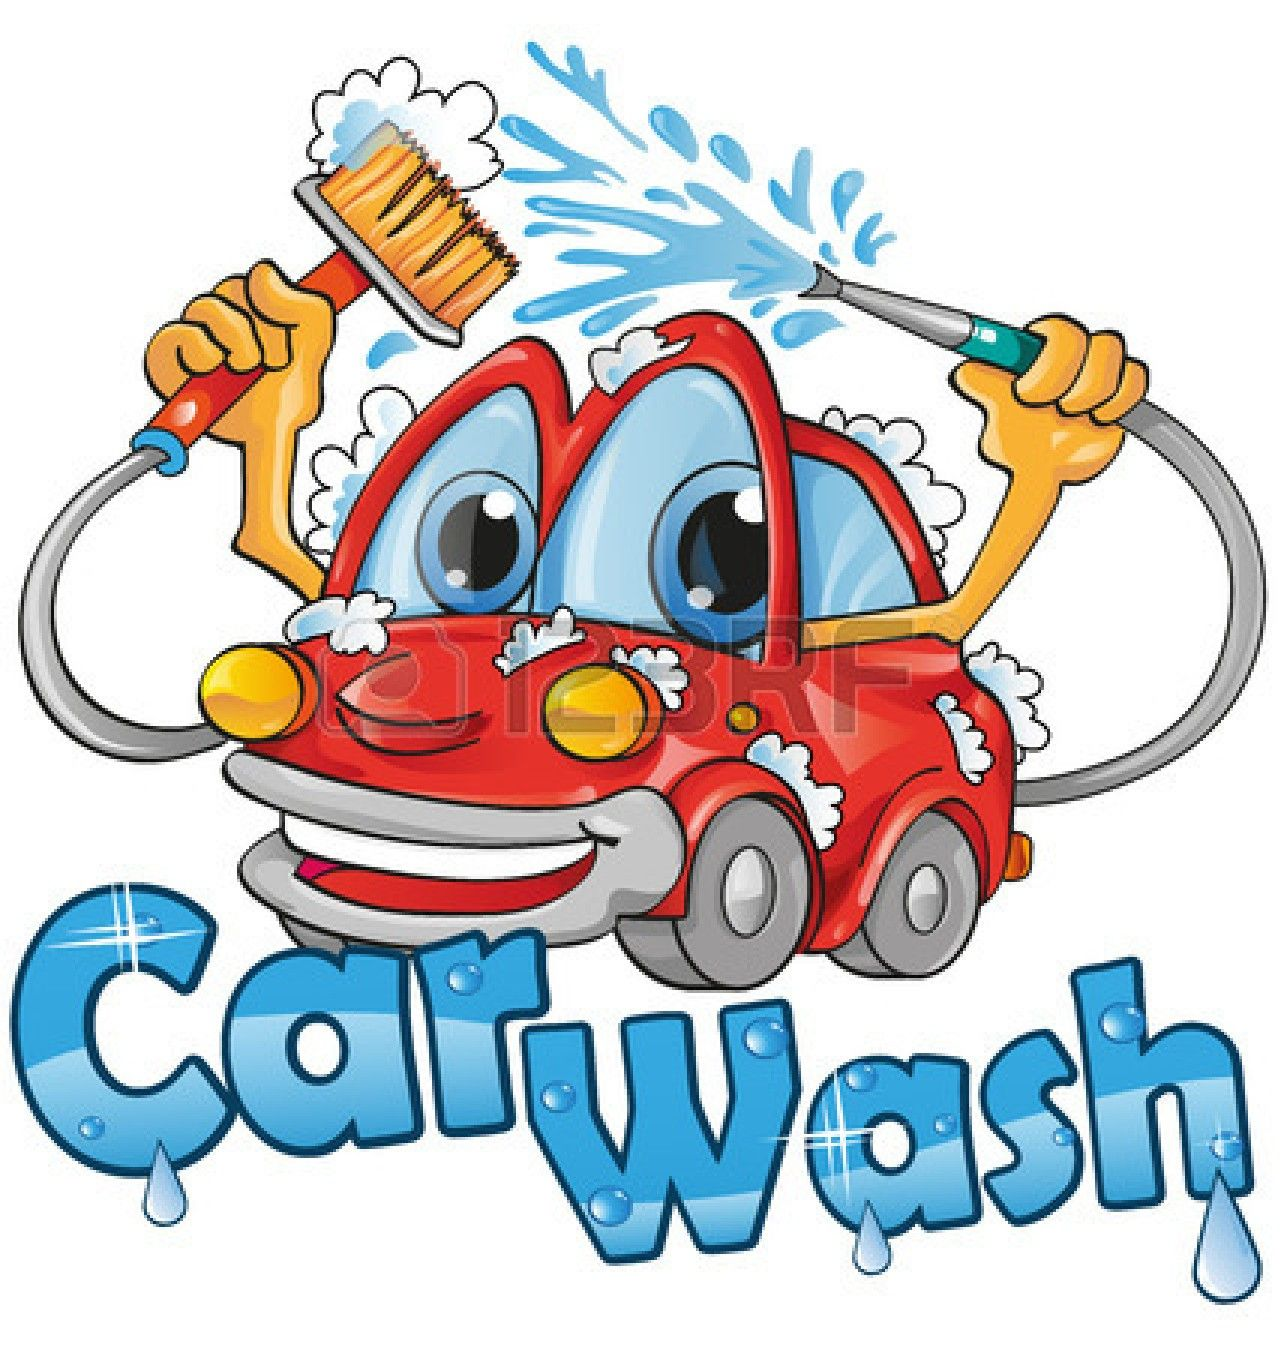 Car Wash Clip Art 453880 Jpg 1 281 1 350 Pixels Car Wash